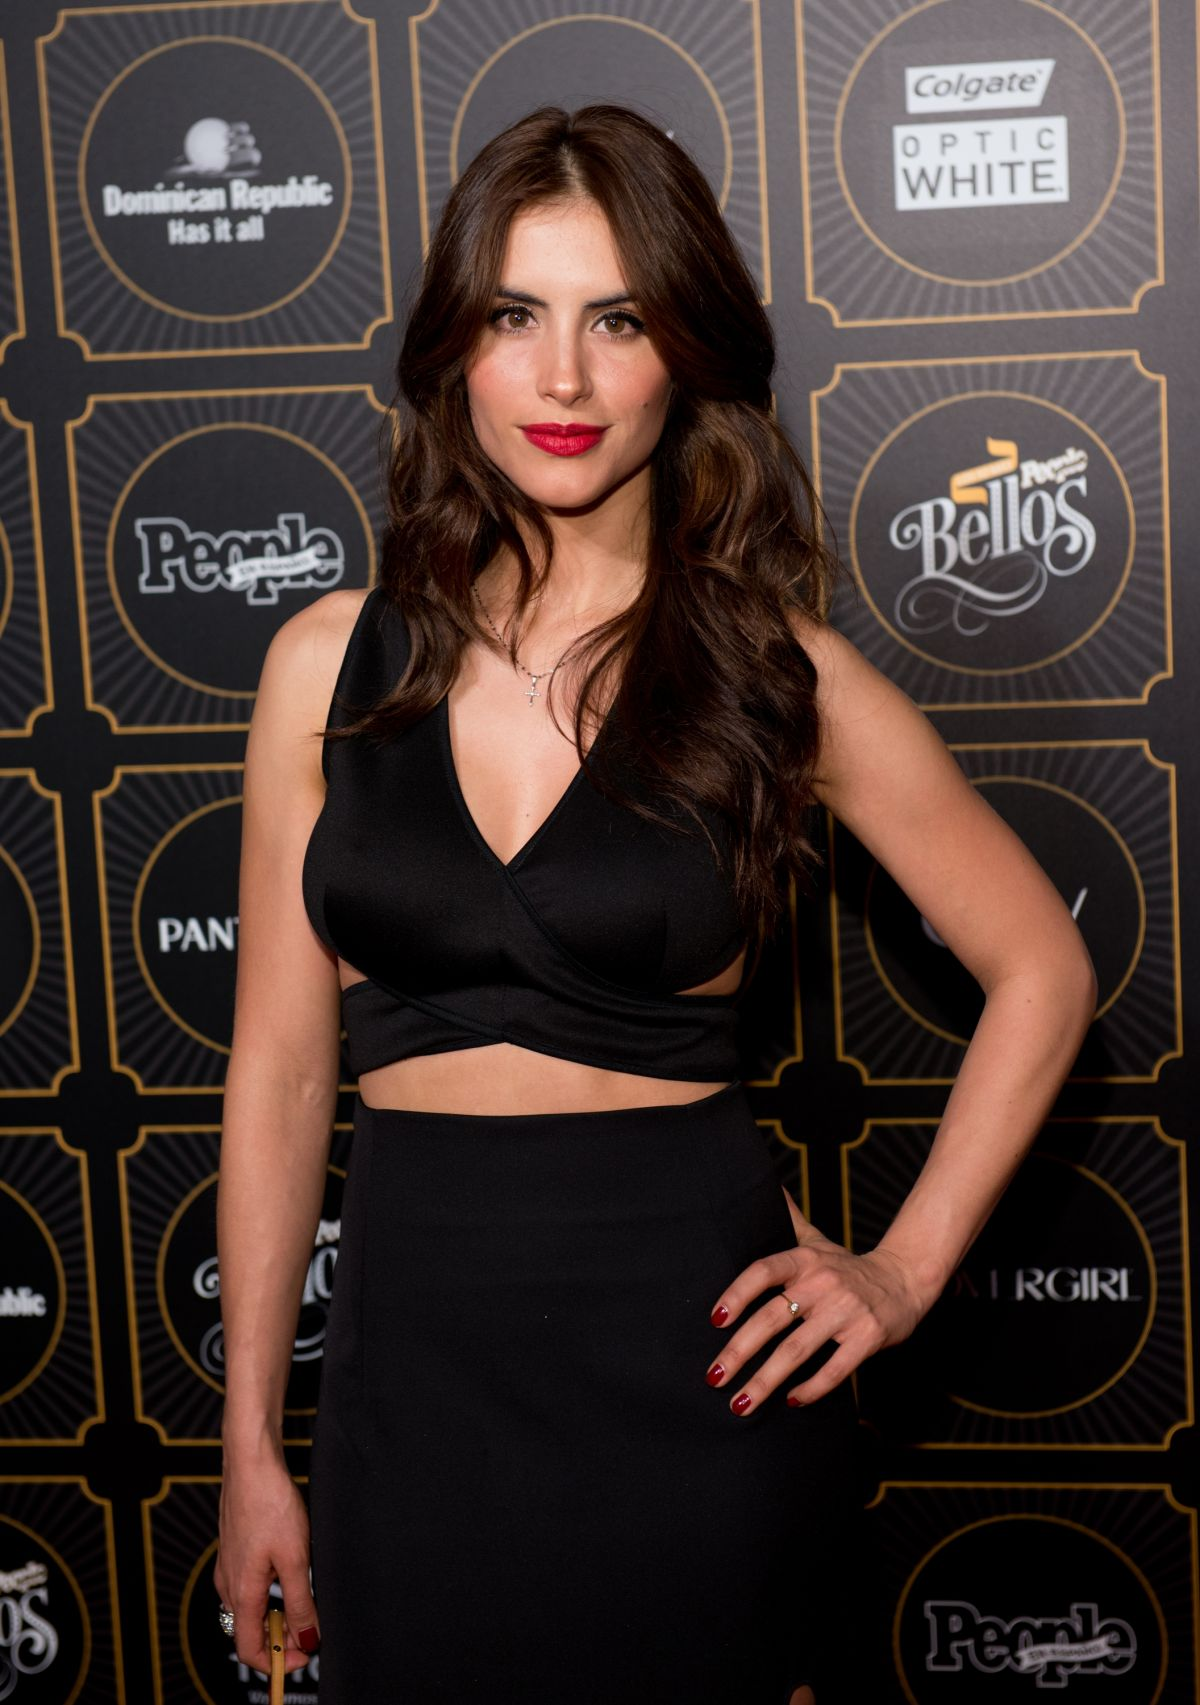 JESSICA CEDIEL at People en Espanol's 50 Most Beautiful Issue Celebration